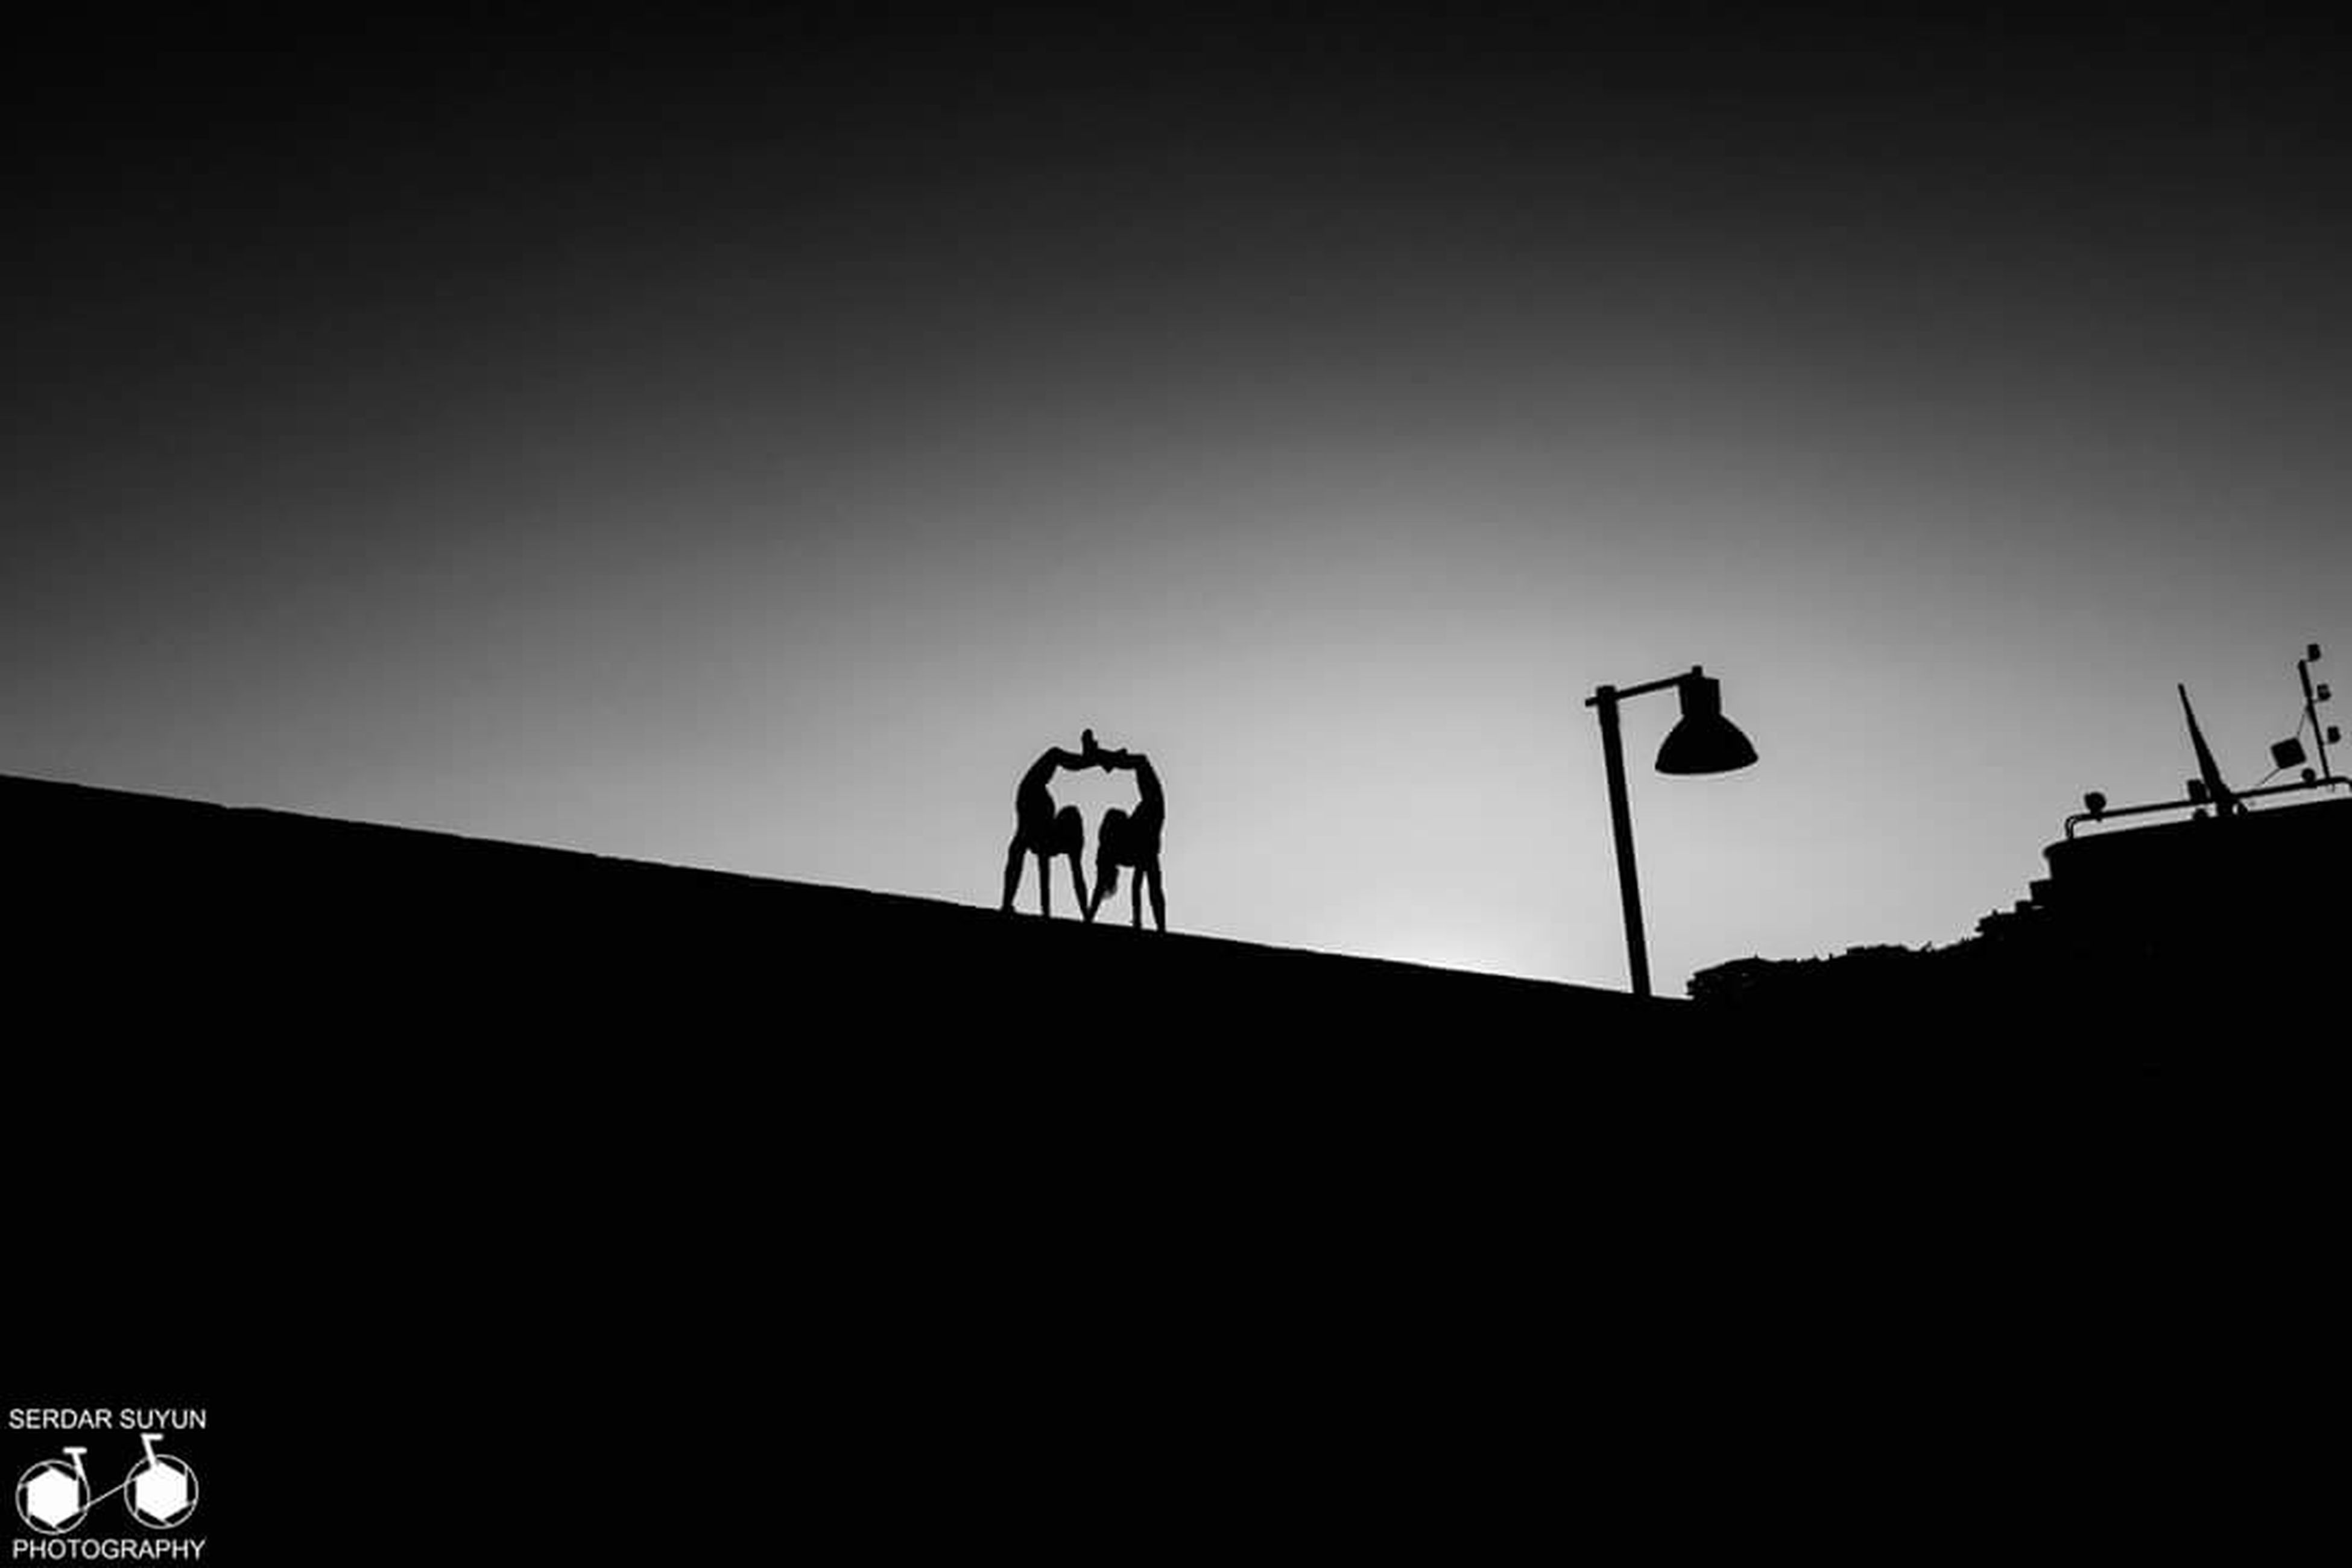 silhouette, clear sky, copy space, low angle view, dark, outline, outdoors, high section, solitude